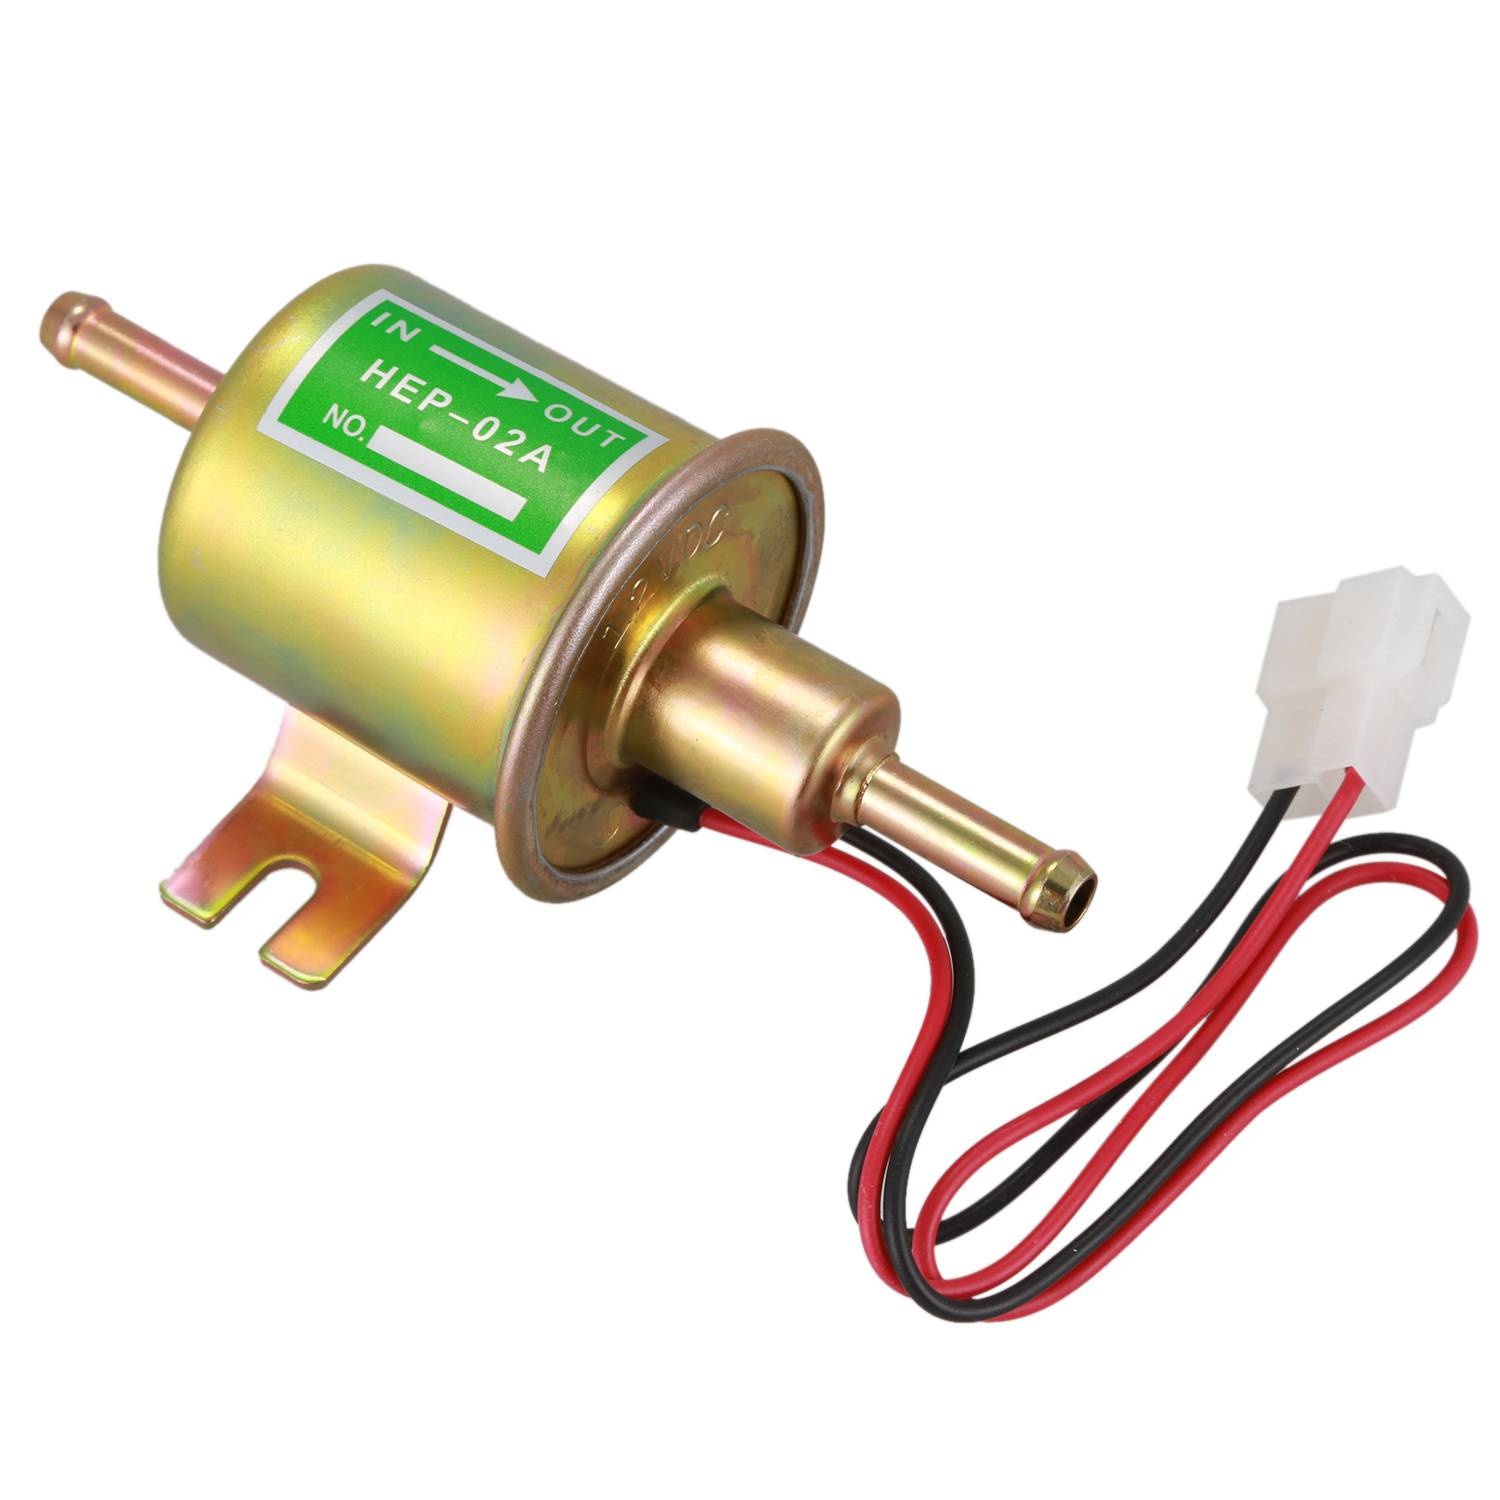 New 12V Electric Fuel Pump Inline Petrol Low Pressupe Hep-02A